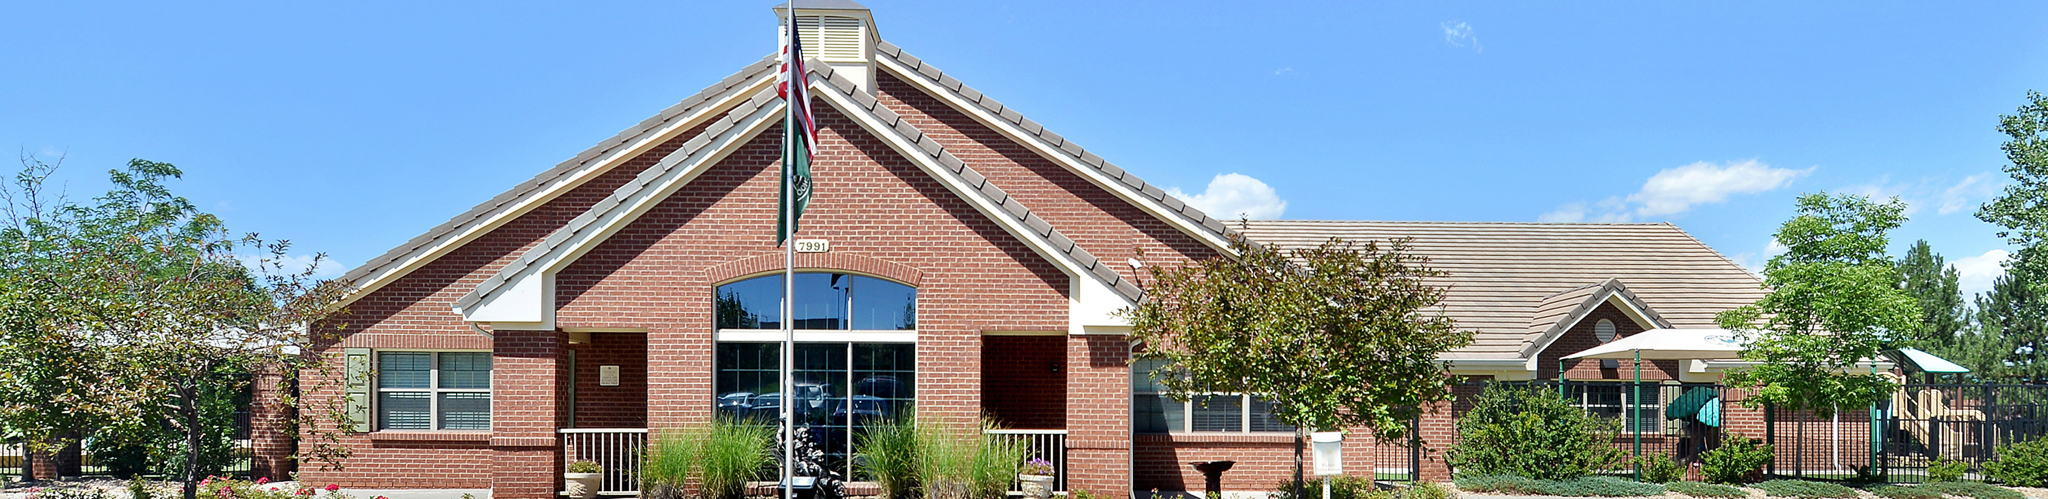 Exterior of a Primrose School of Littleton